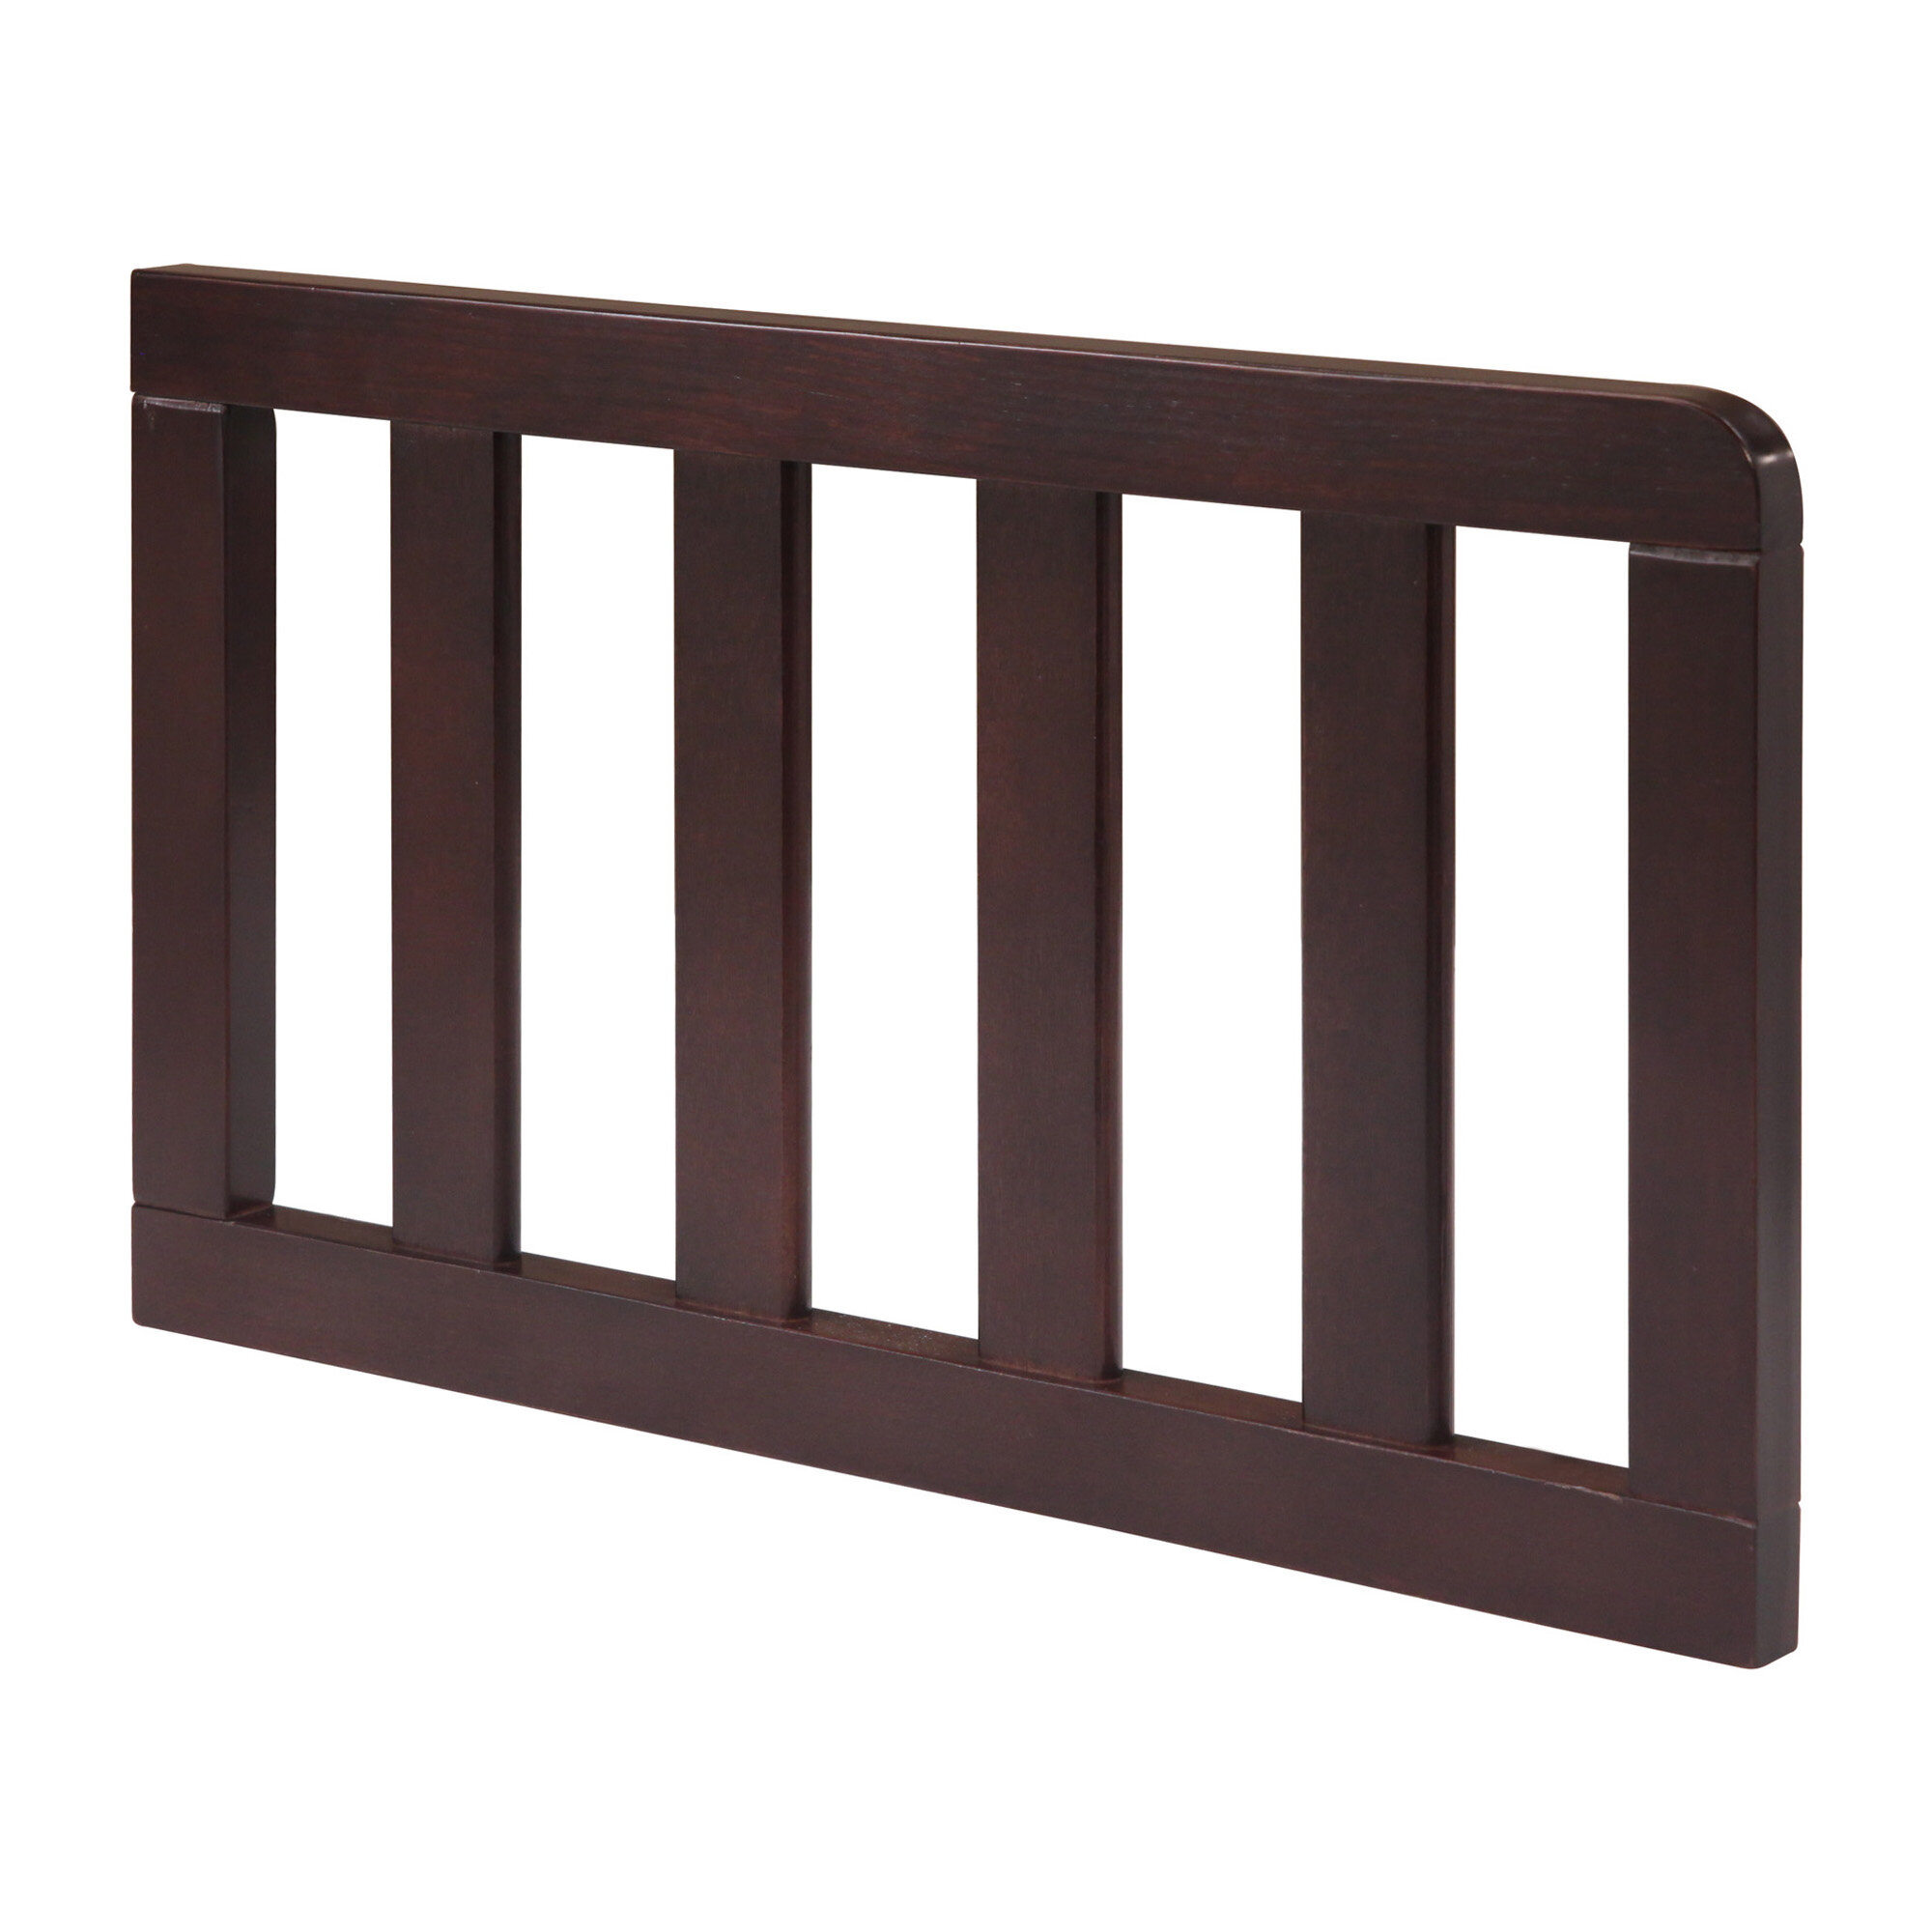 Delta Children Toddler Bed Rail Reviews